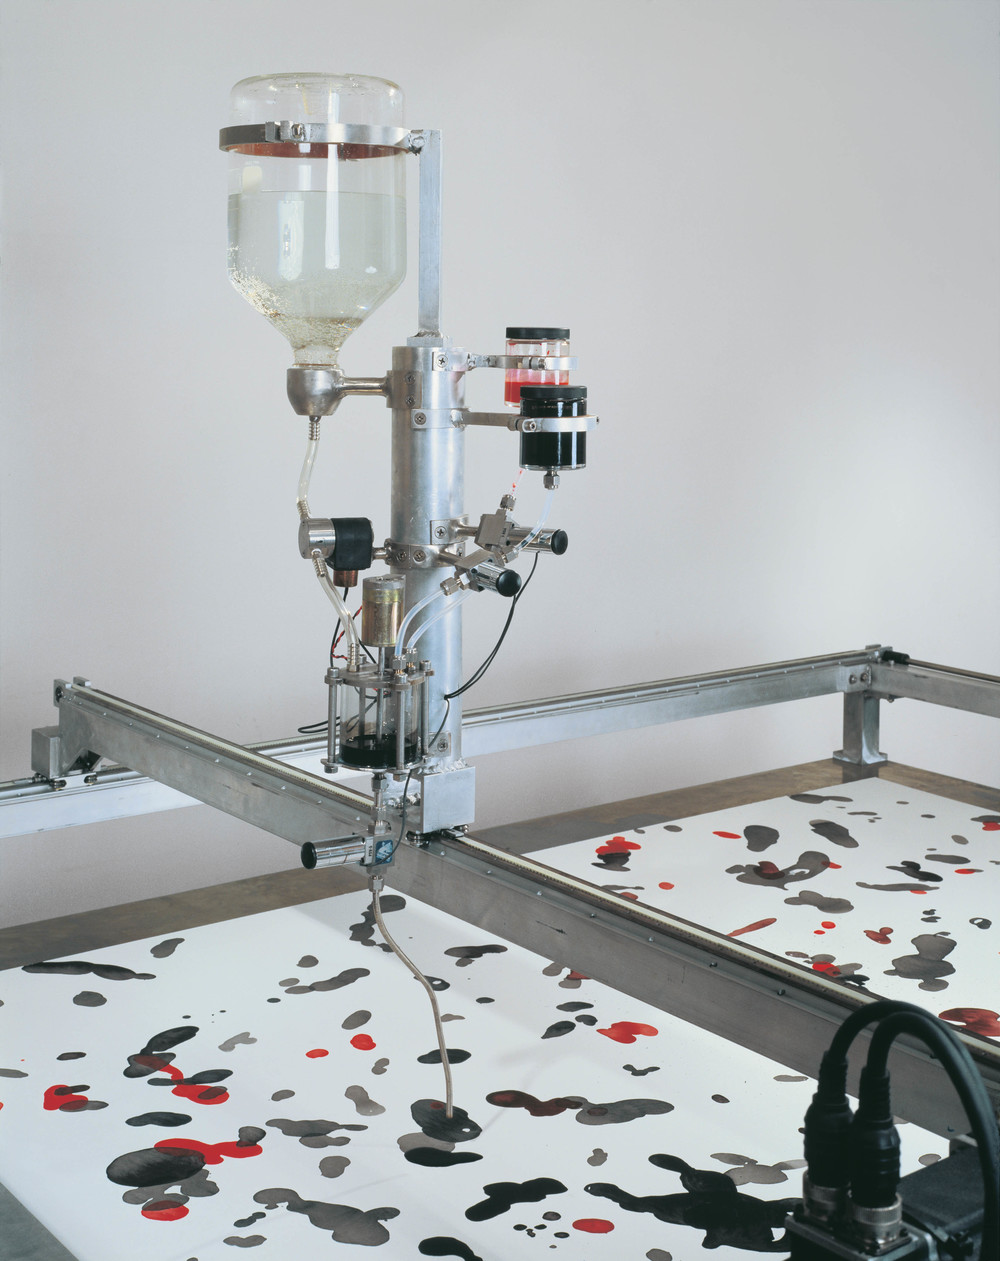 Drawing Machine, 2001, Aluminum, stainless steel, glass, valve, servo motors, track, computer, custom software, bearing, ink, and paper, 92 x 94 x 94 inches